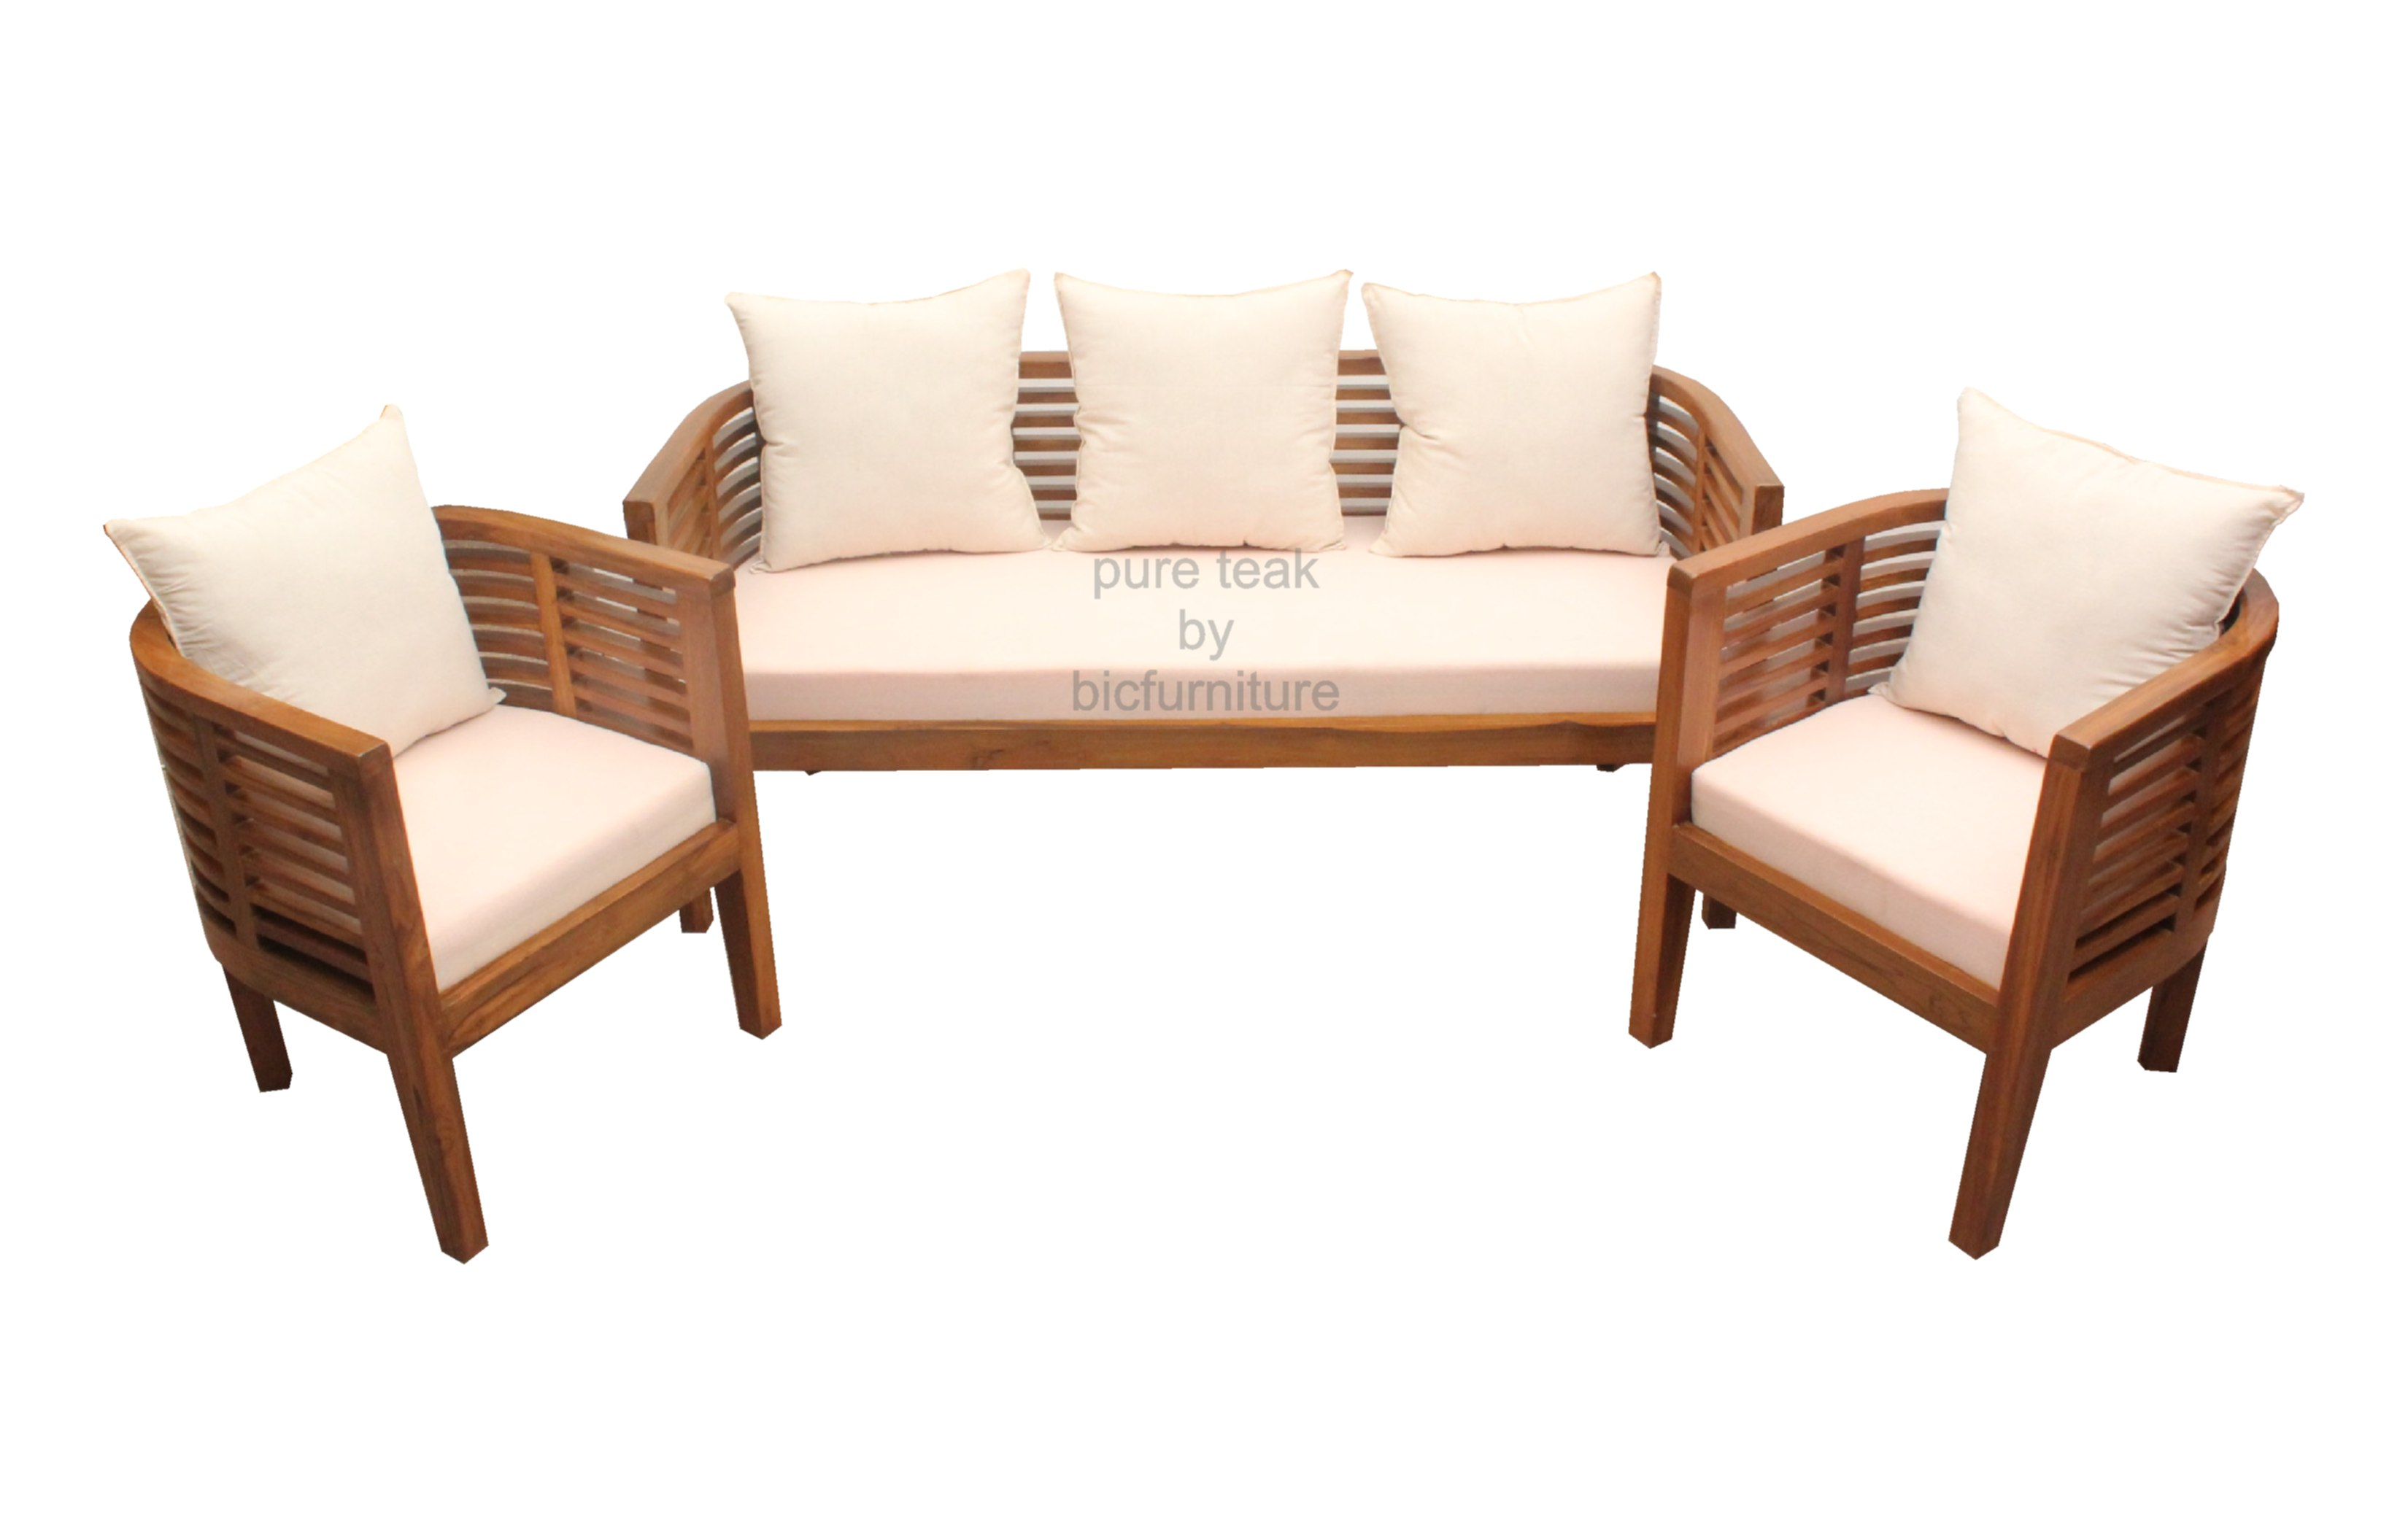 Teak wood round sofa makers in sleek Mumbai homes design